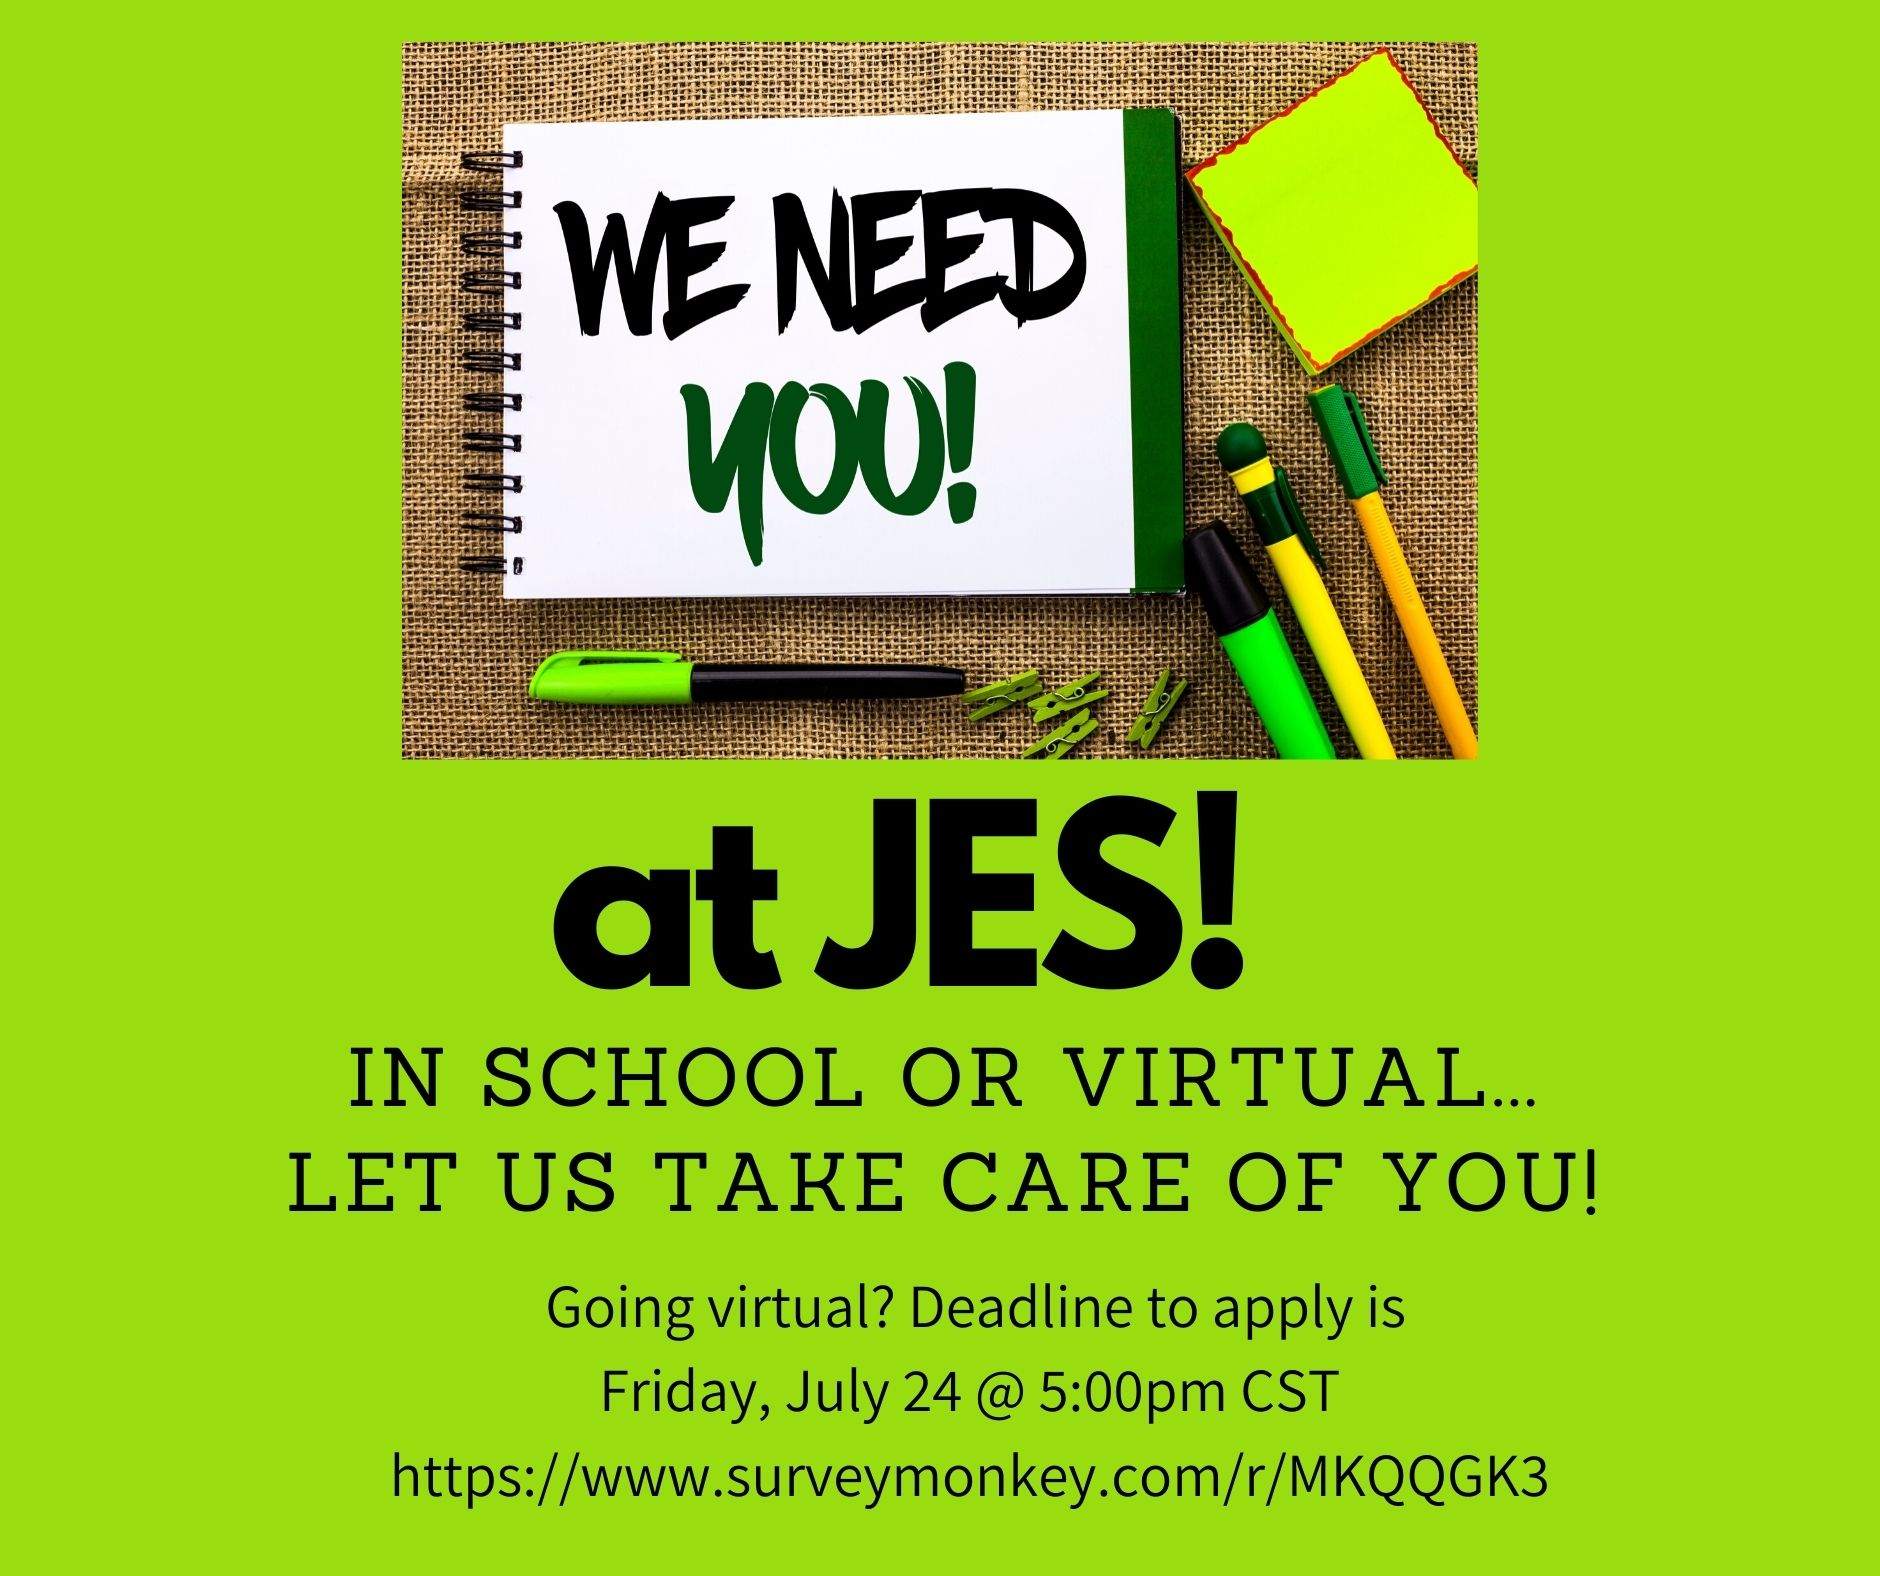 We Need You at JES